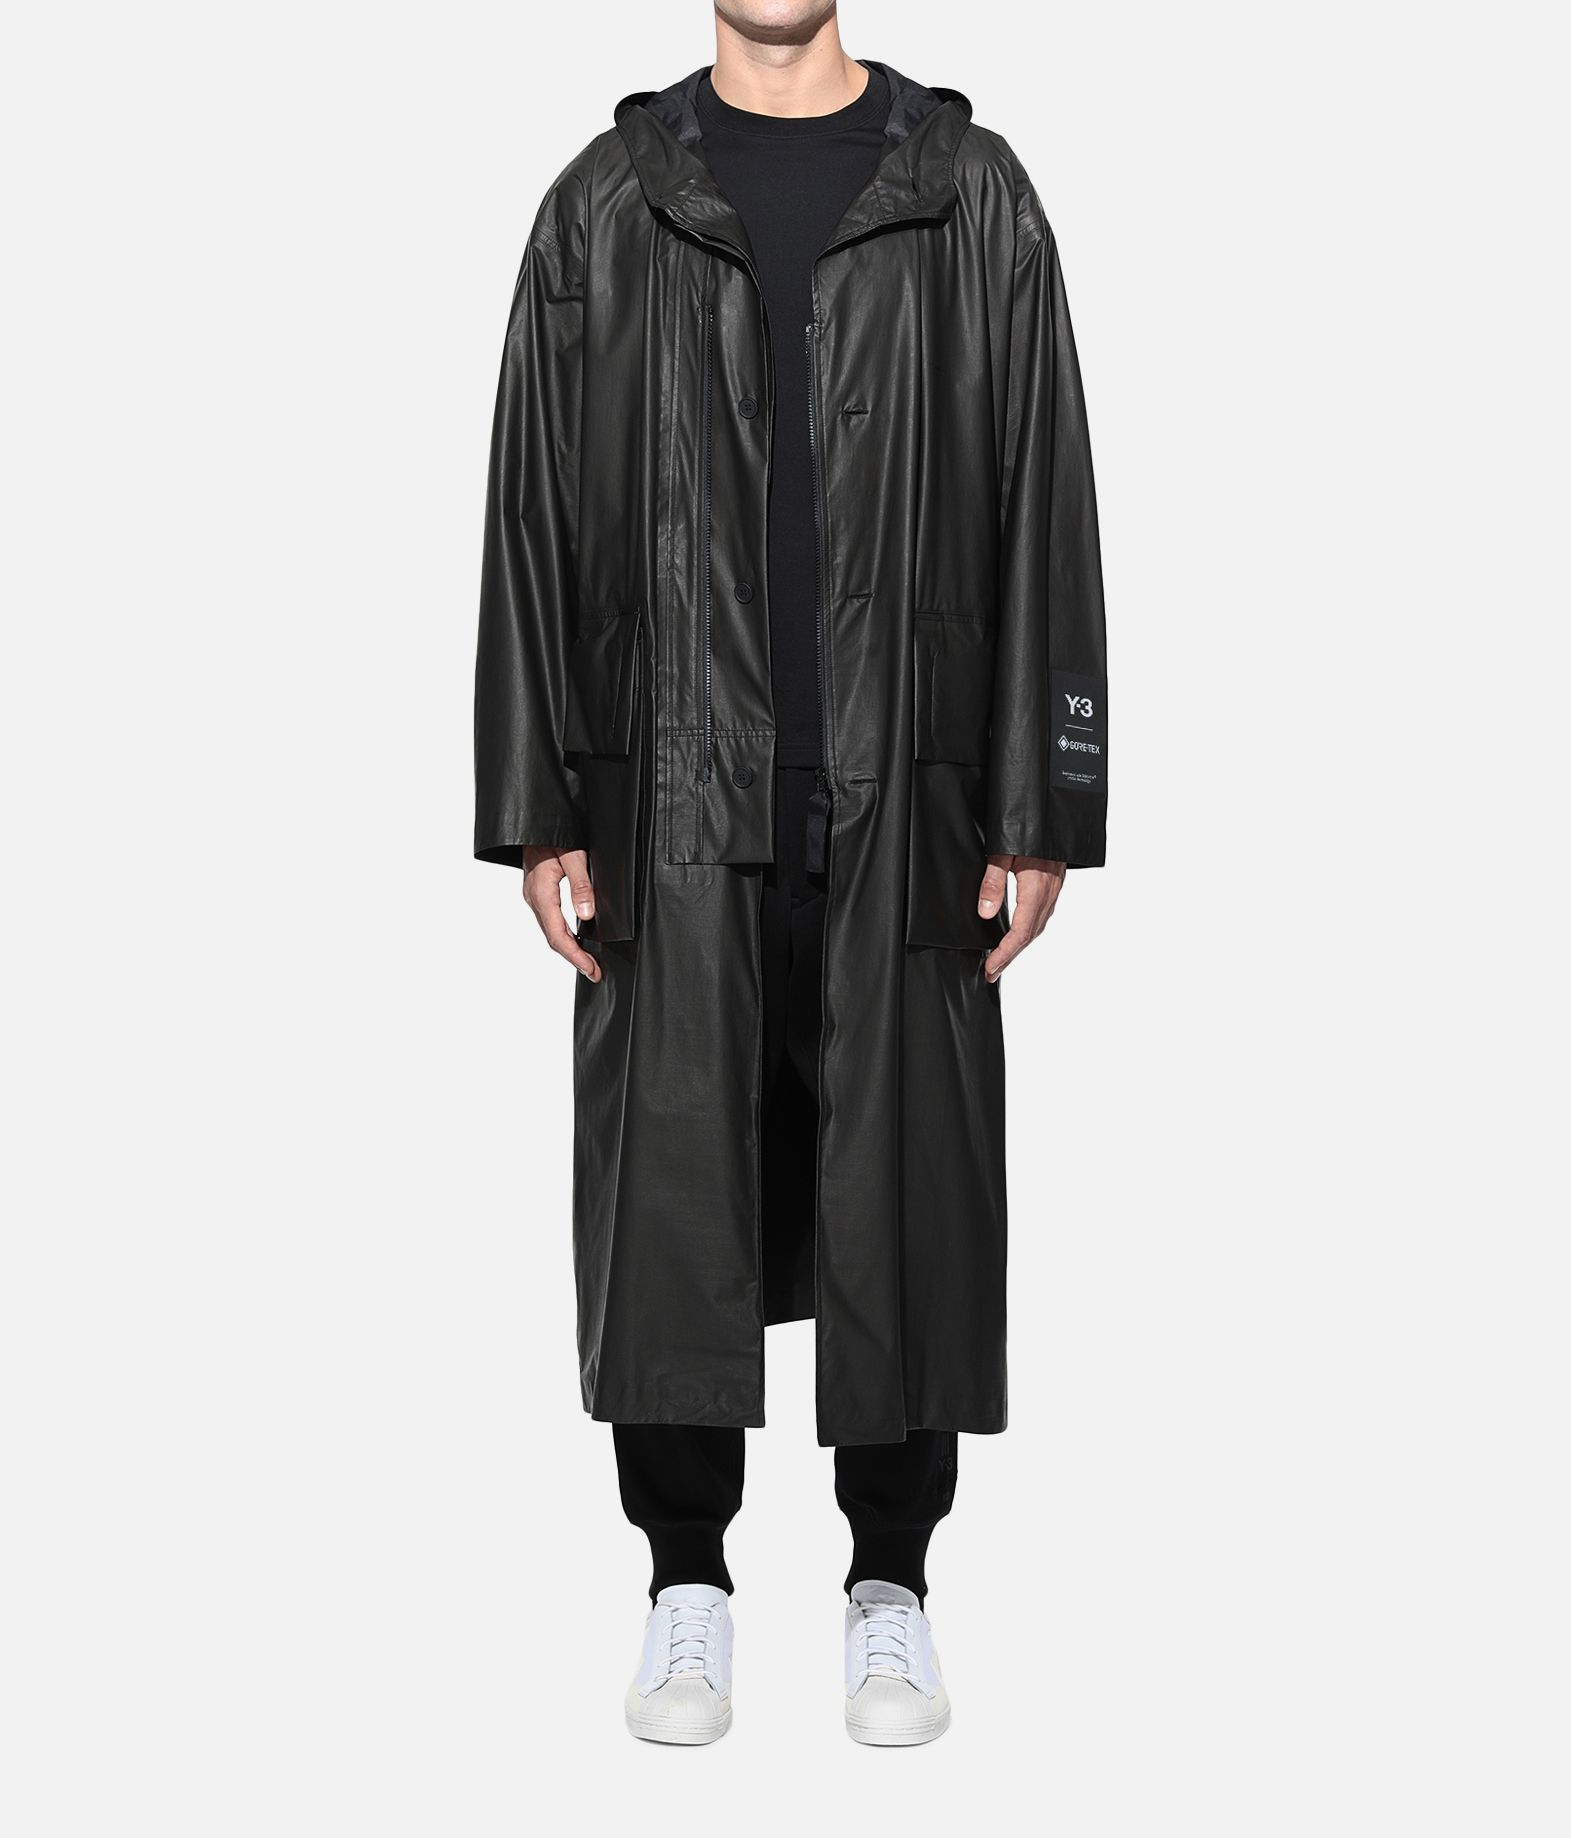 Y-3 Y-3 GORE-TEX Long Coat Raincoat Man r